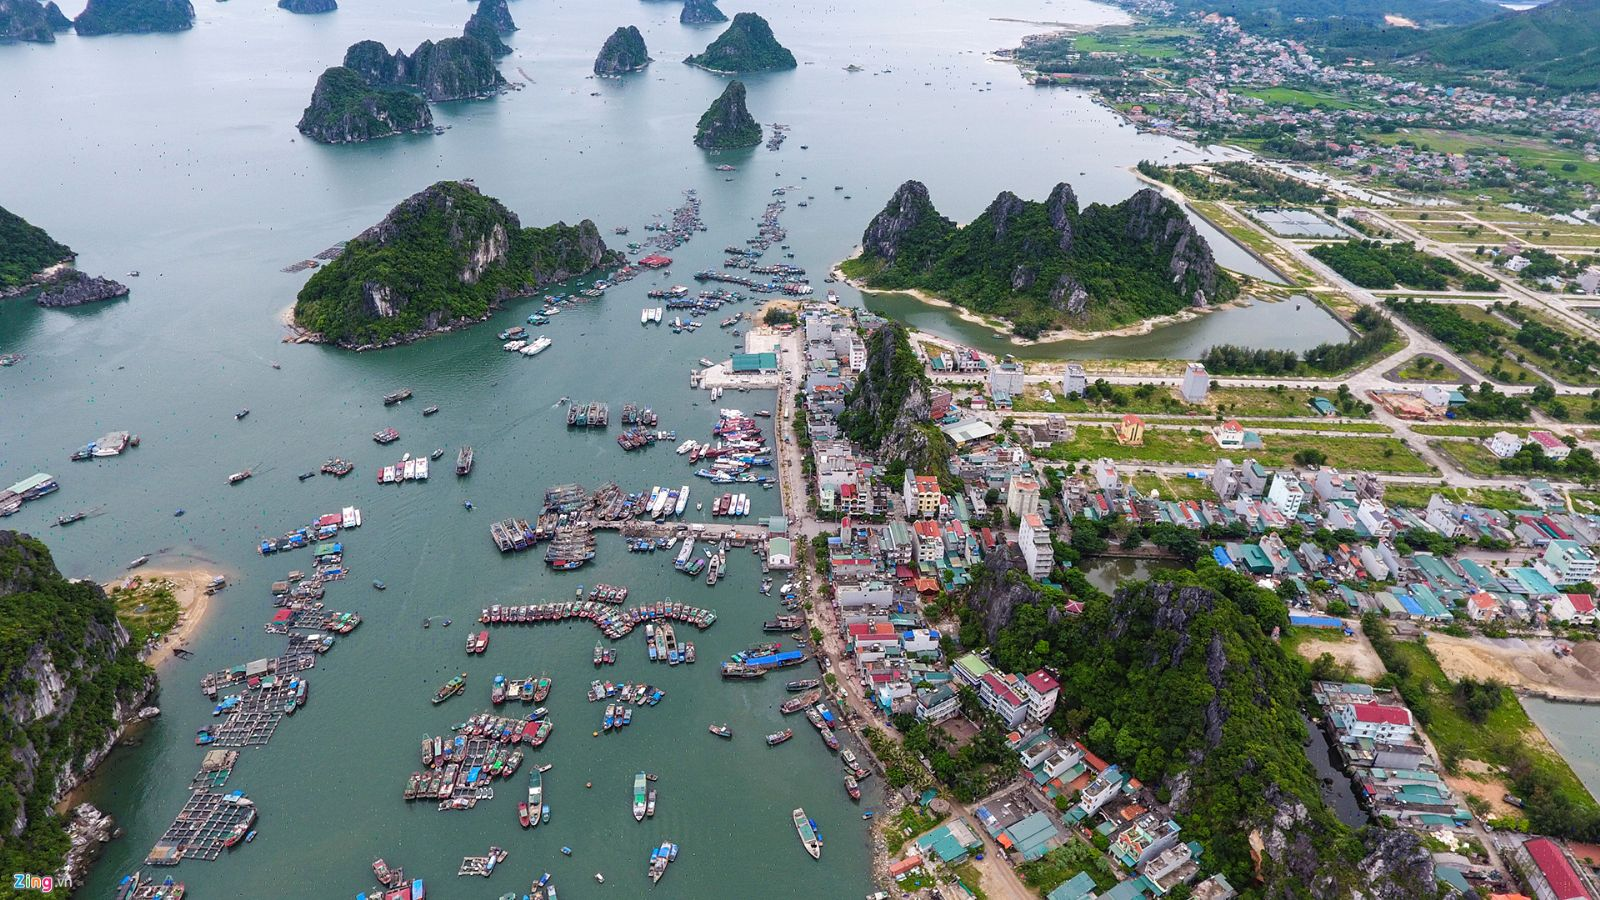 Cai Rong Port - Where to get boat to Banh Sua Island